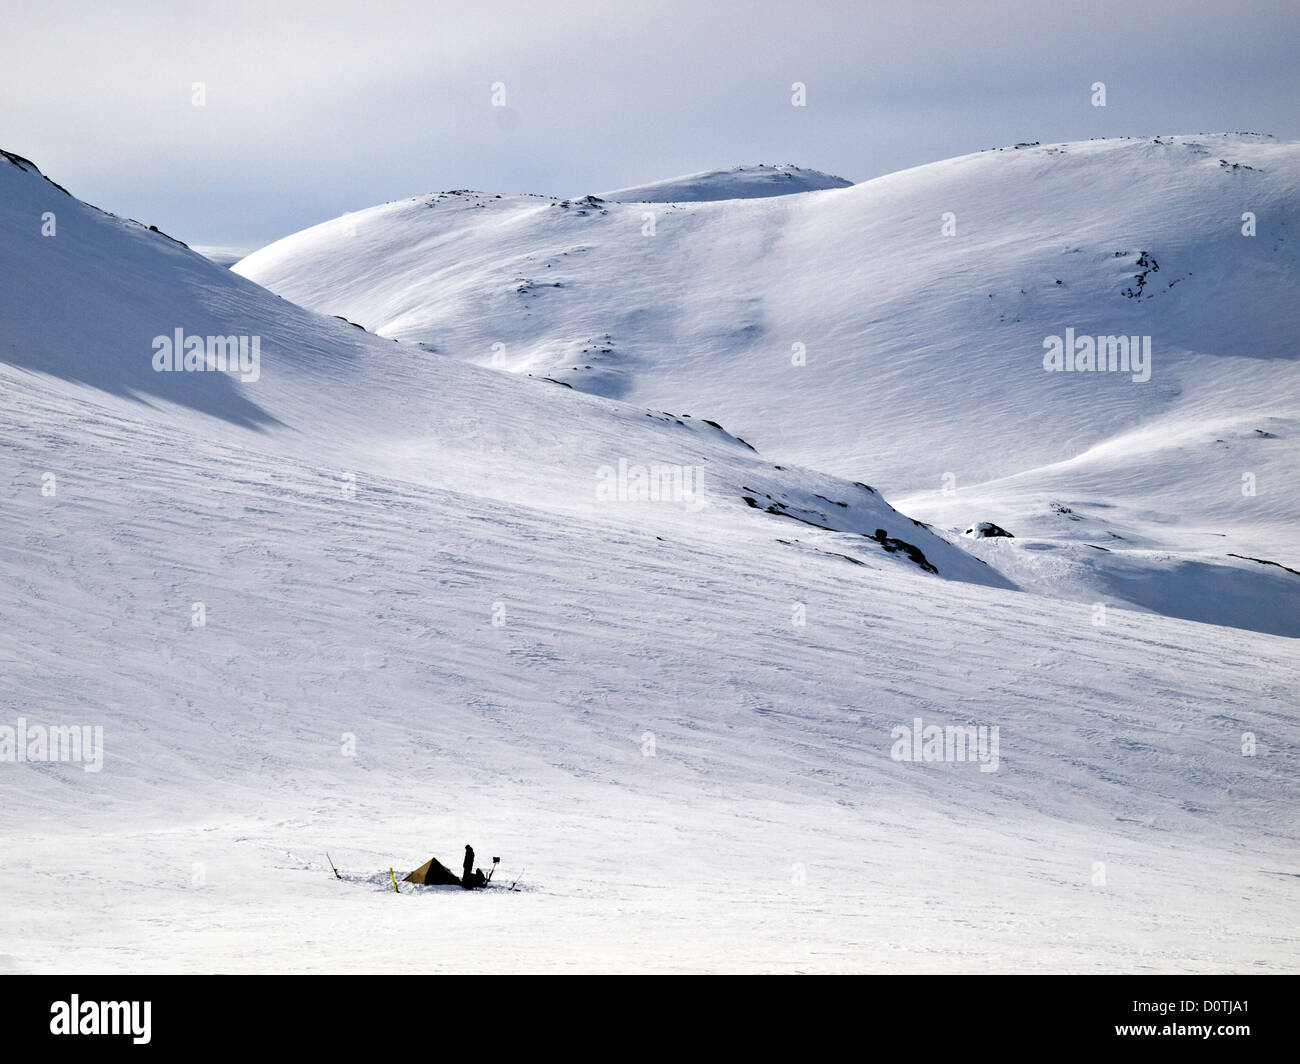 Figure stood by a tent in snowy wilderness, Hardanger ,Norway - Stock Image